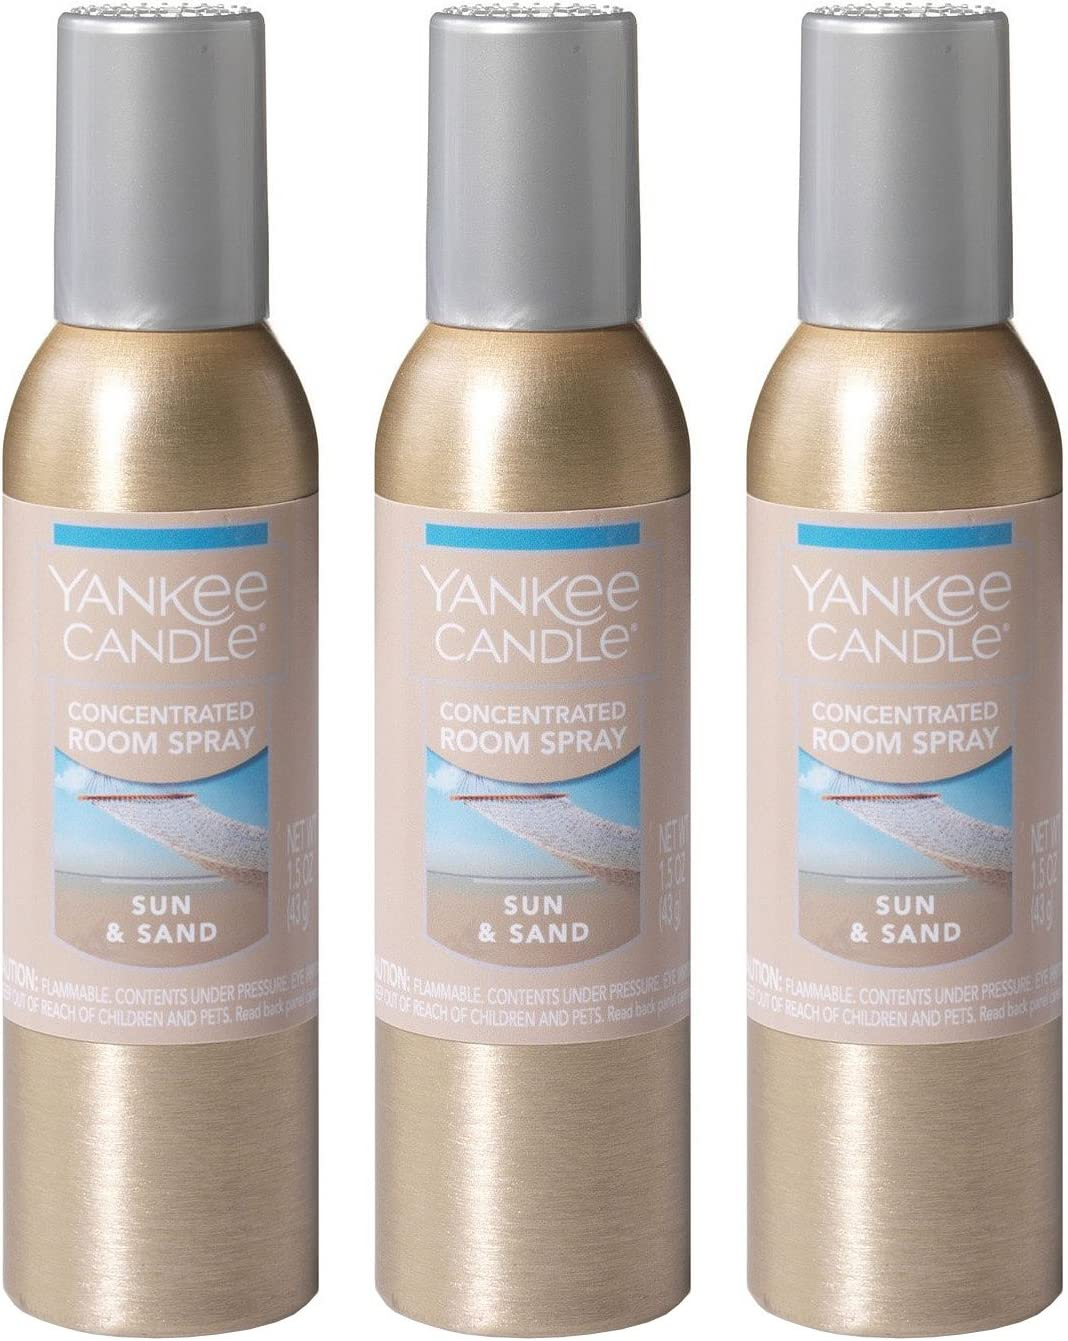 Yankee Candle Concentrated Room Spray 3-Pack (Sun & Sand)